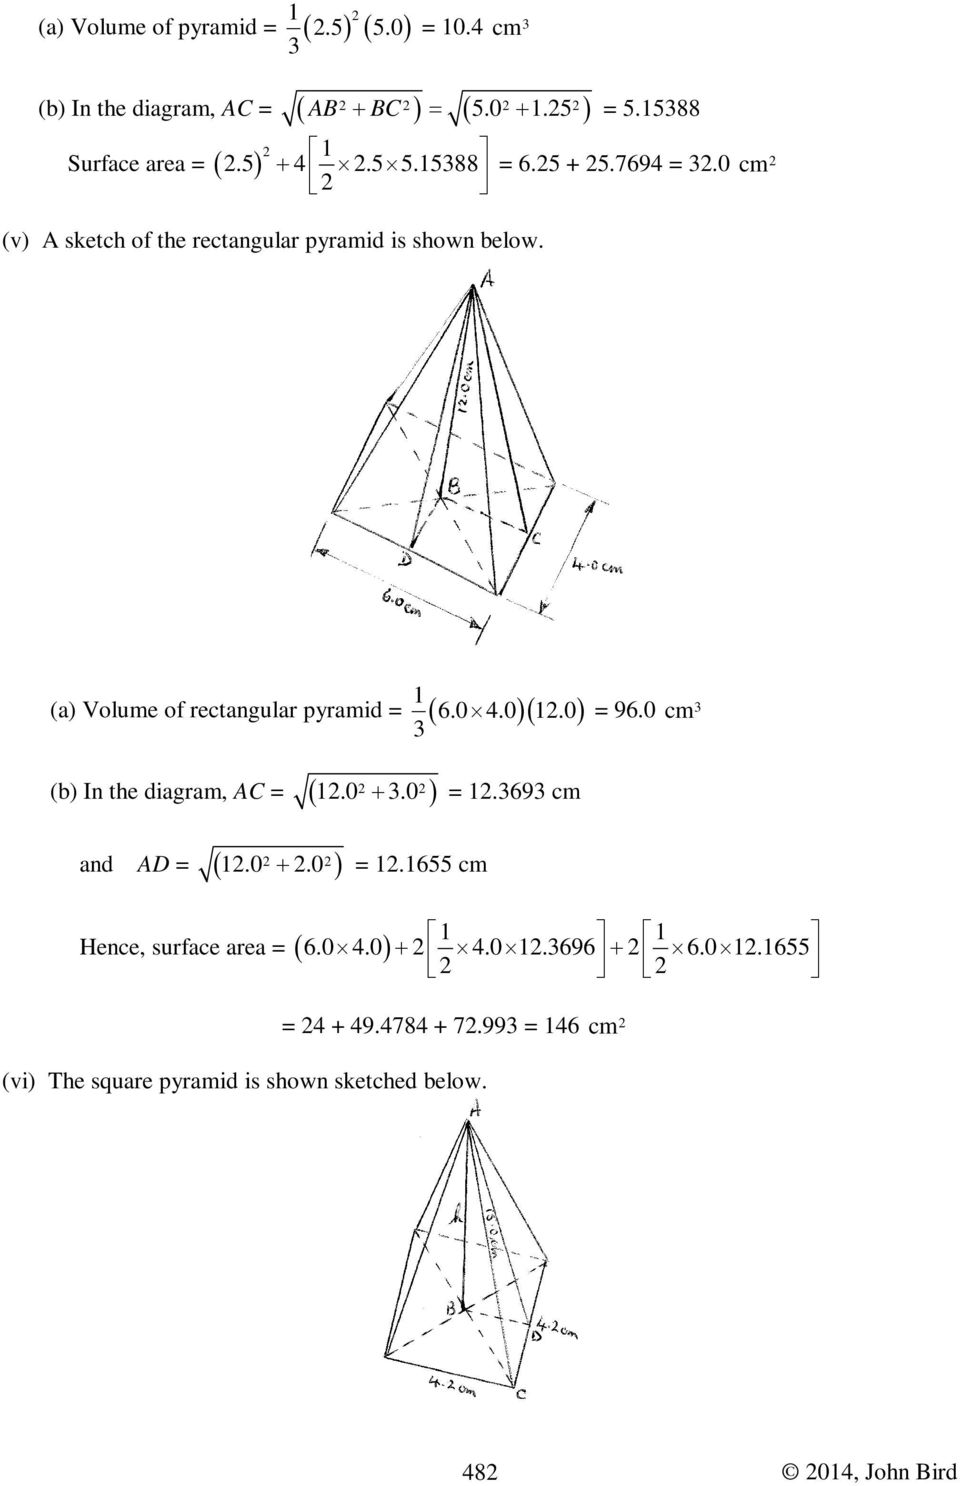 0 cm (a) Volume of rectangular pyramid = ( )( ) (b) In the diagram, AC = ( 1.0.0) and AD = ( 1.0.0) + = 1.69 cm + = 1.